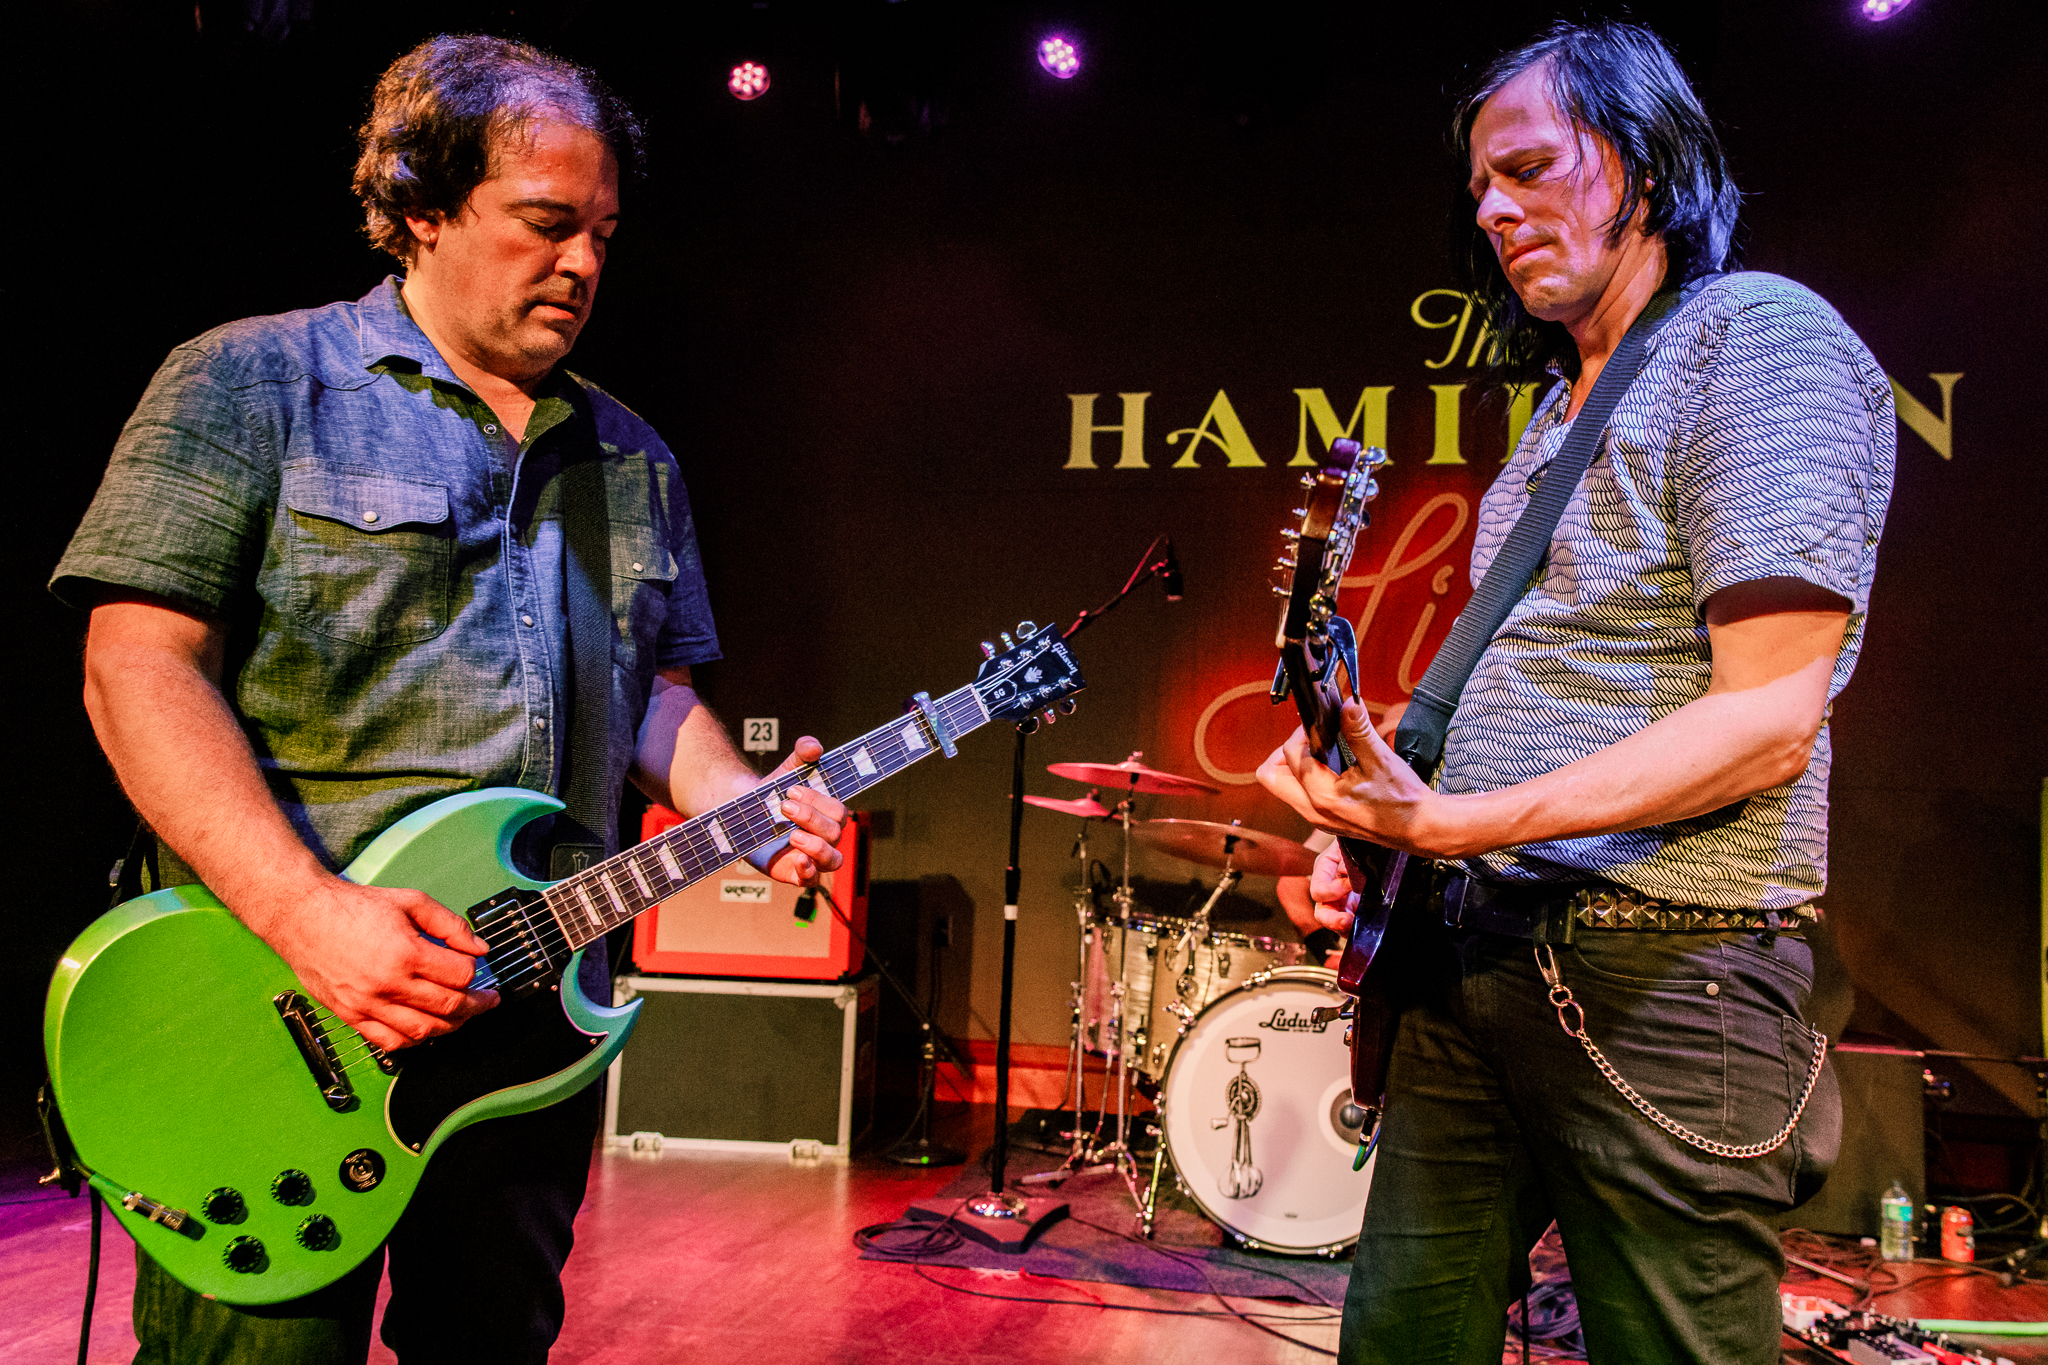 The Posies performing at The Hamilton in Washington, DC on June 16th, 2018 (photo by Matt Condon /  @arcane93 )